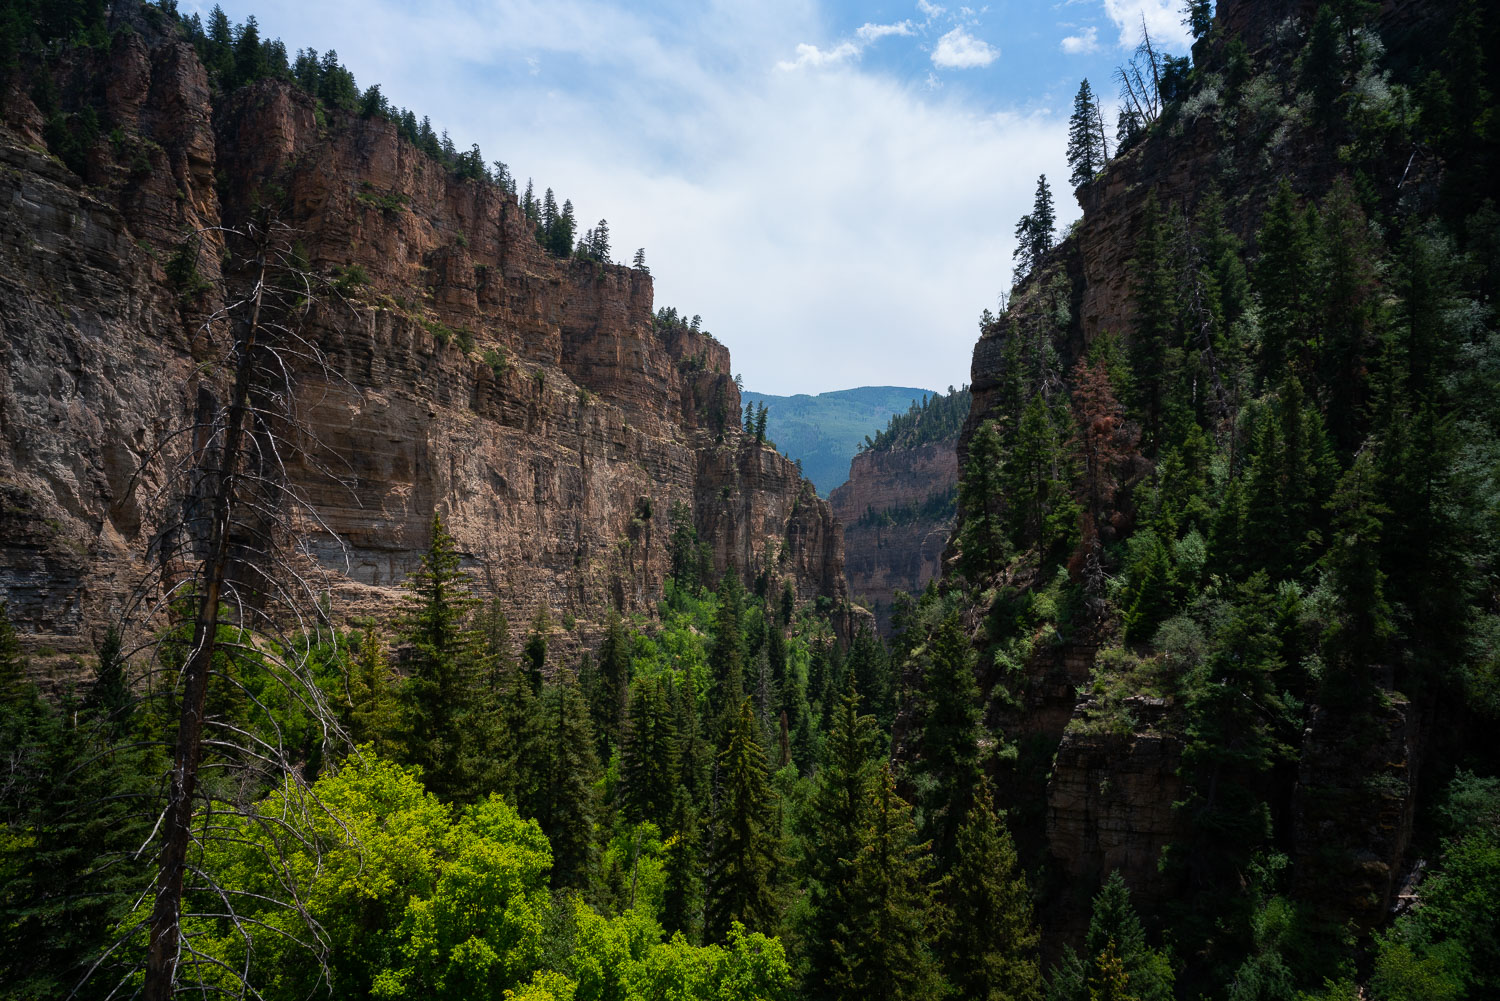 The view from the top of Hanging Lake.